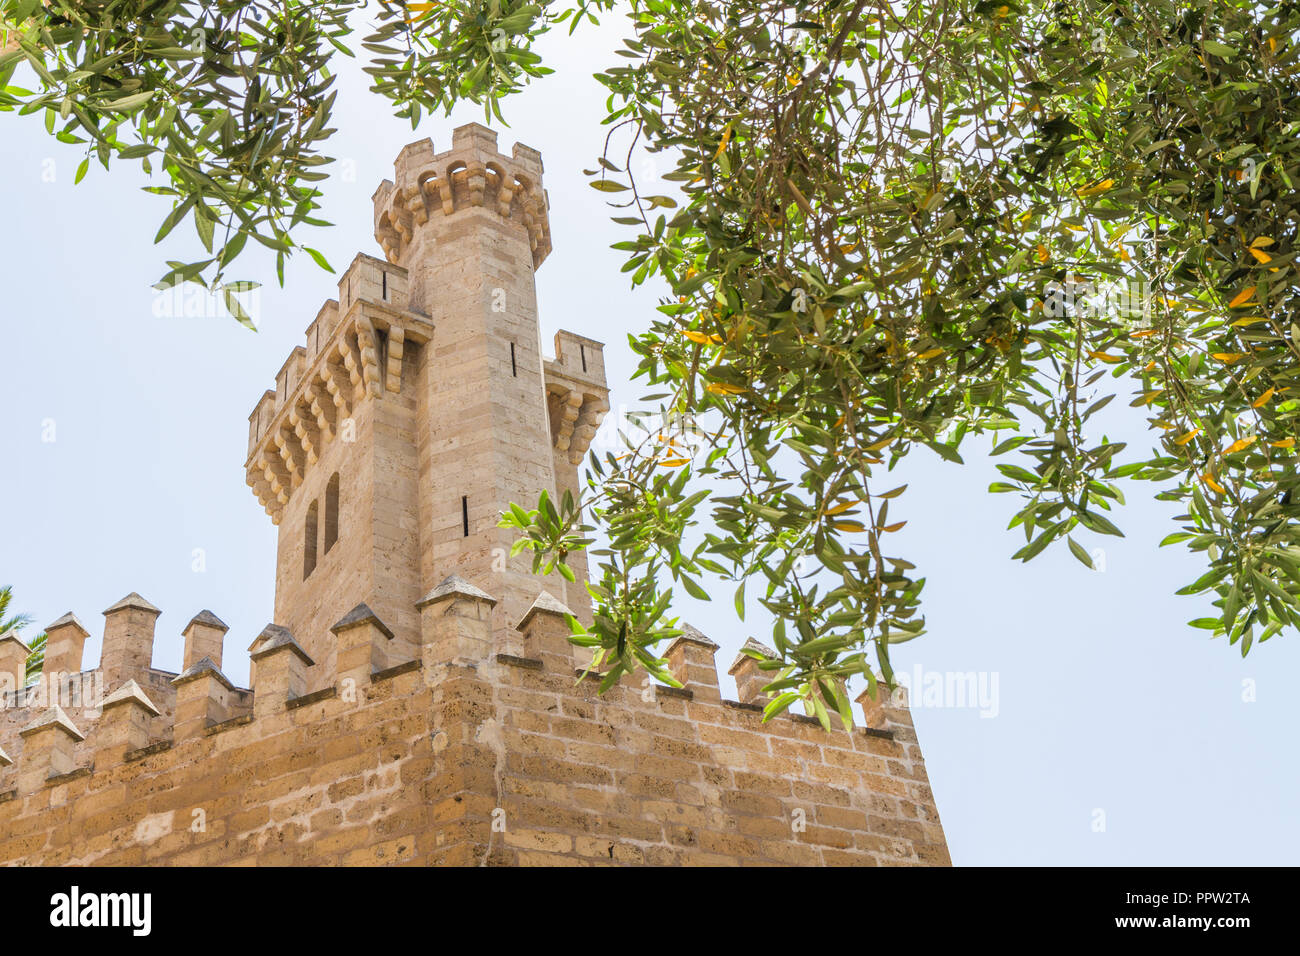 Almudaina Palace exterior walls with defence bastion against blue sky, Palma de Mallorca, Balearic islands, Spain. Travel destination - Stock Image